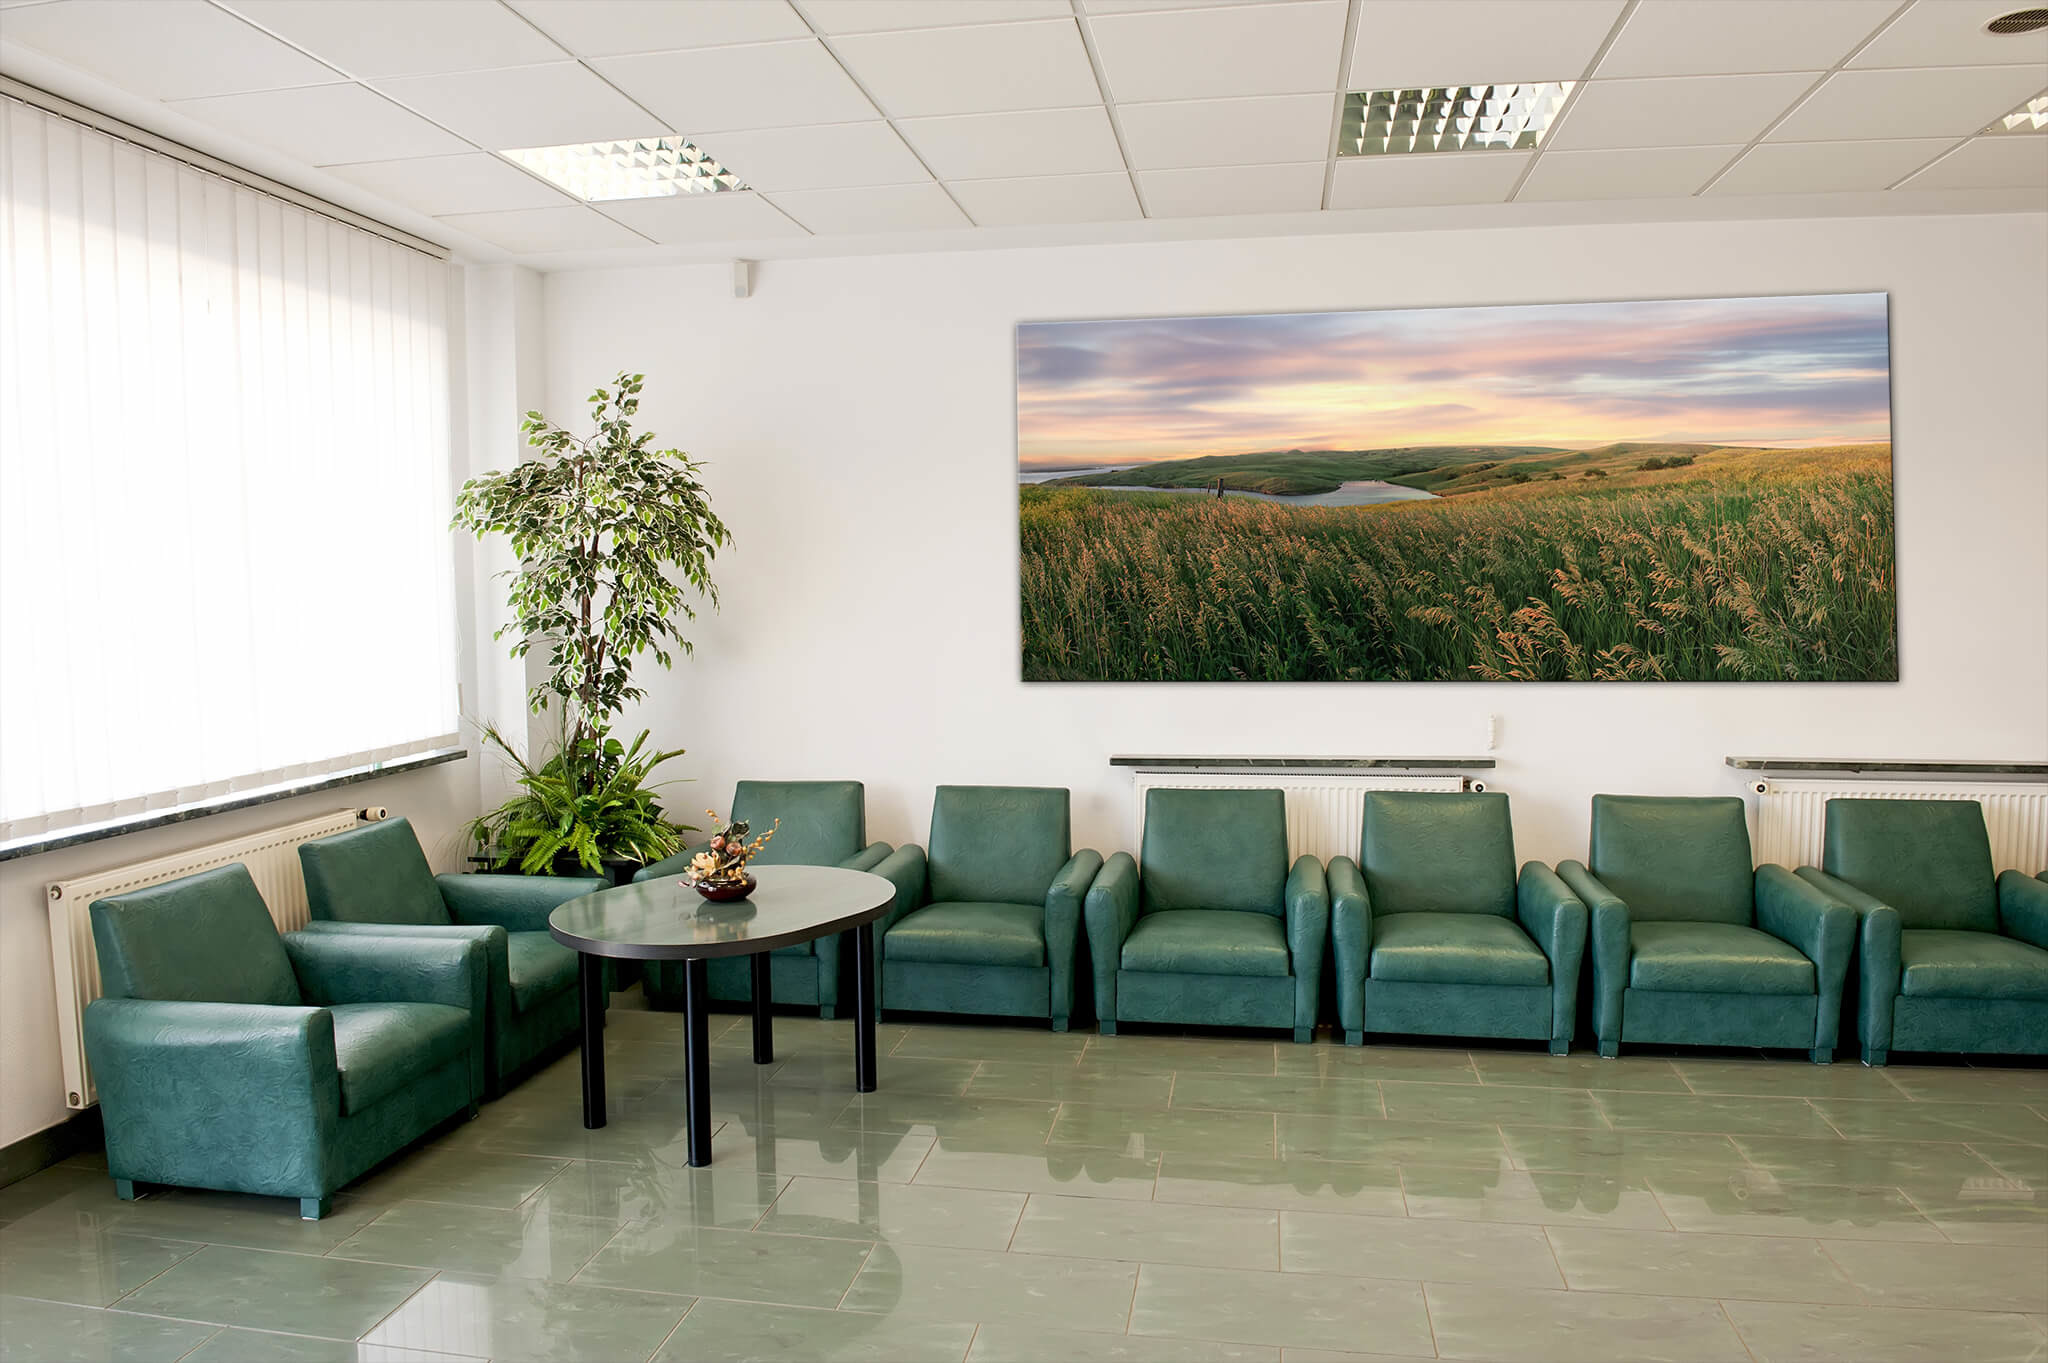 I provide ideal imagery for clinic settings including hospitals, clinics, dental  offices, and other healthcare spaces.